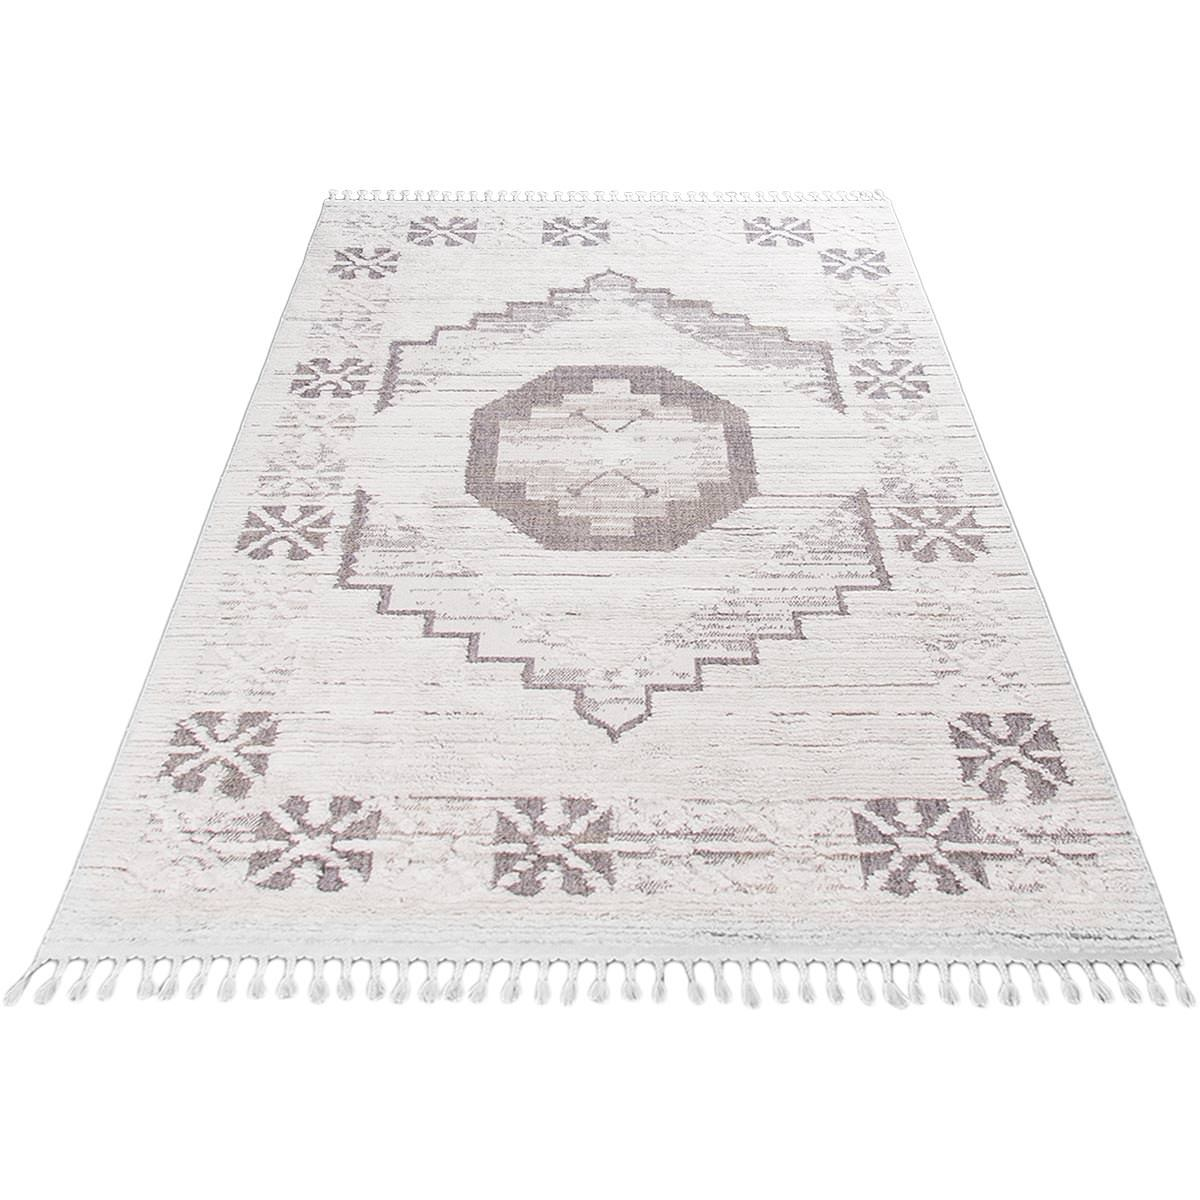 Atlas Rug 01 Grey/Cream 6